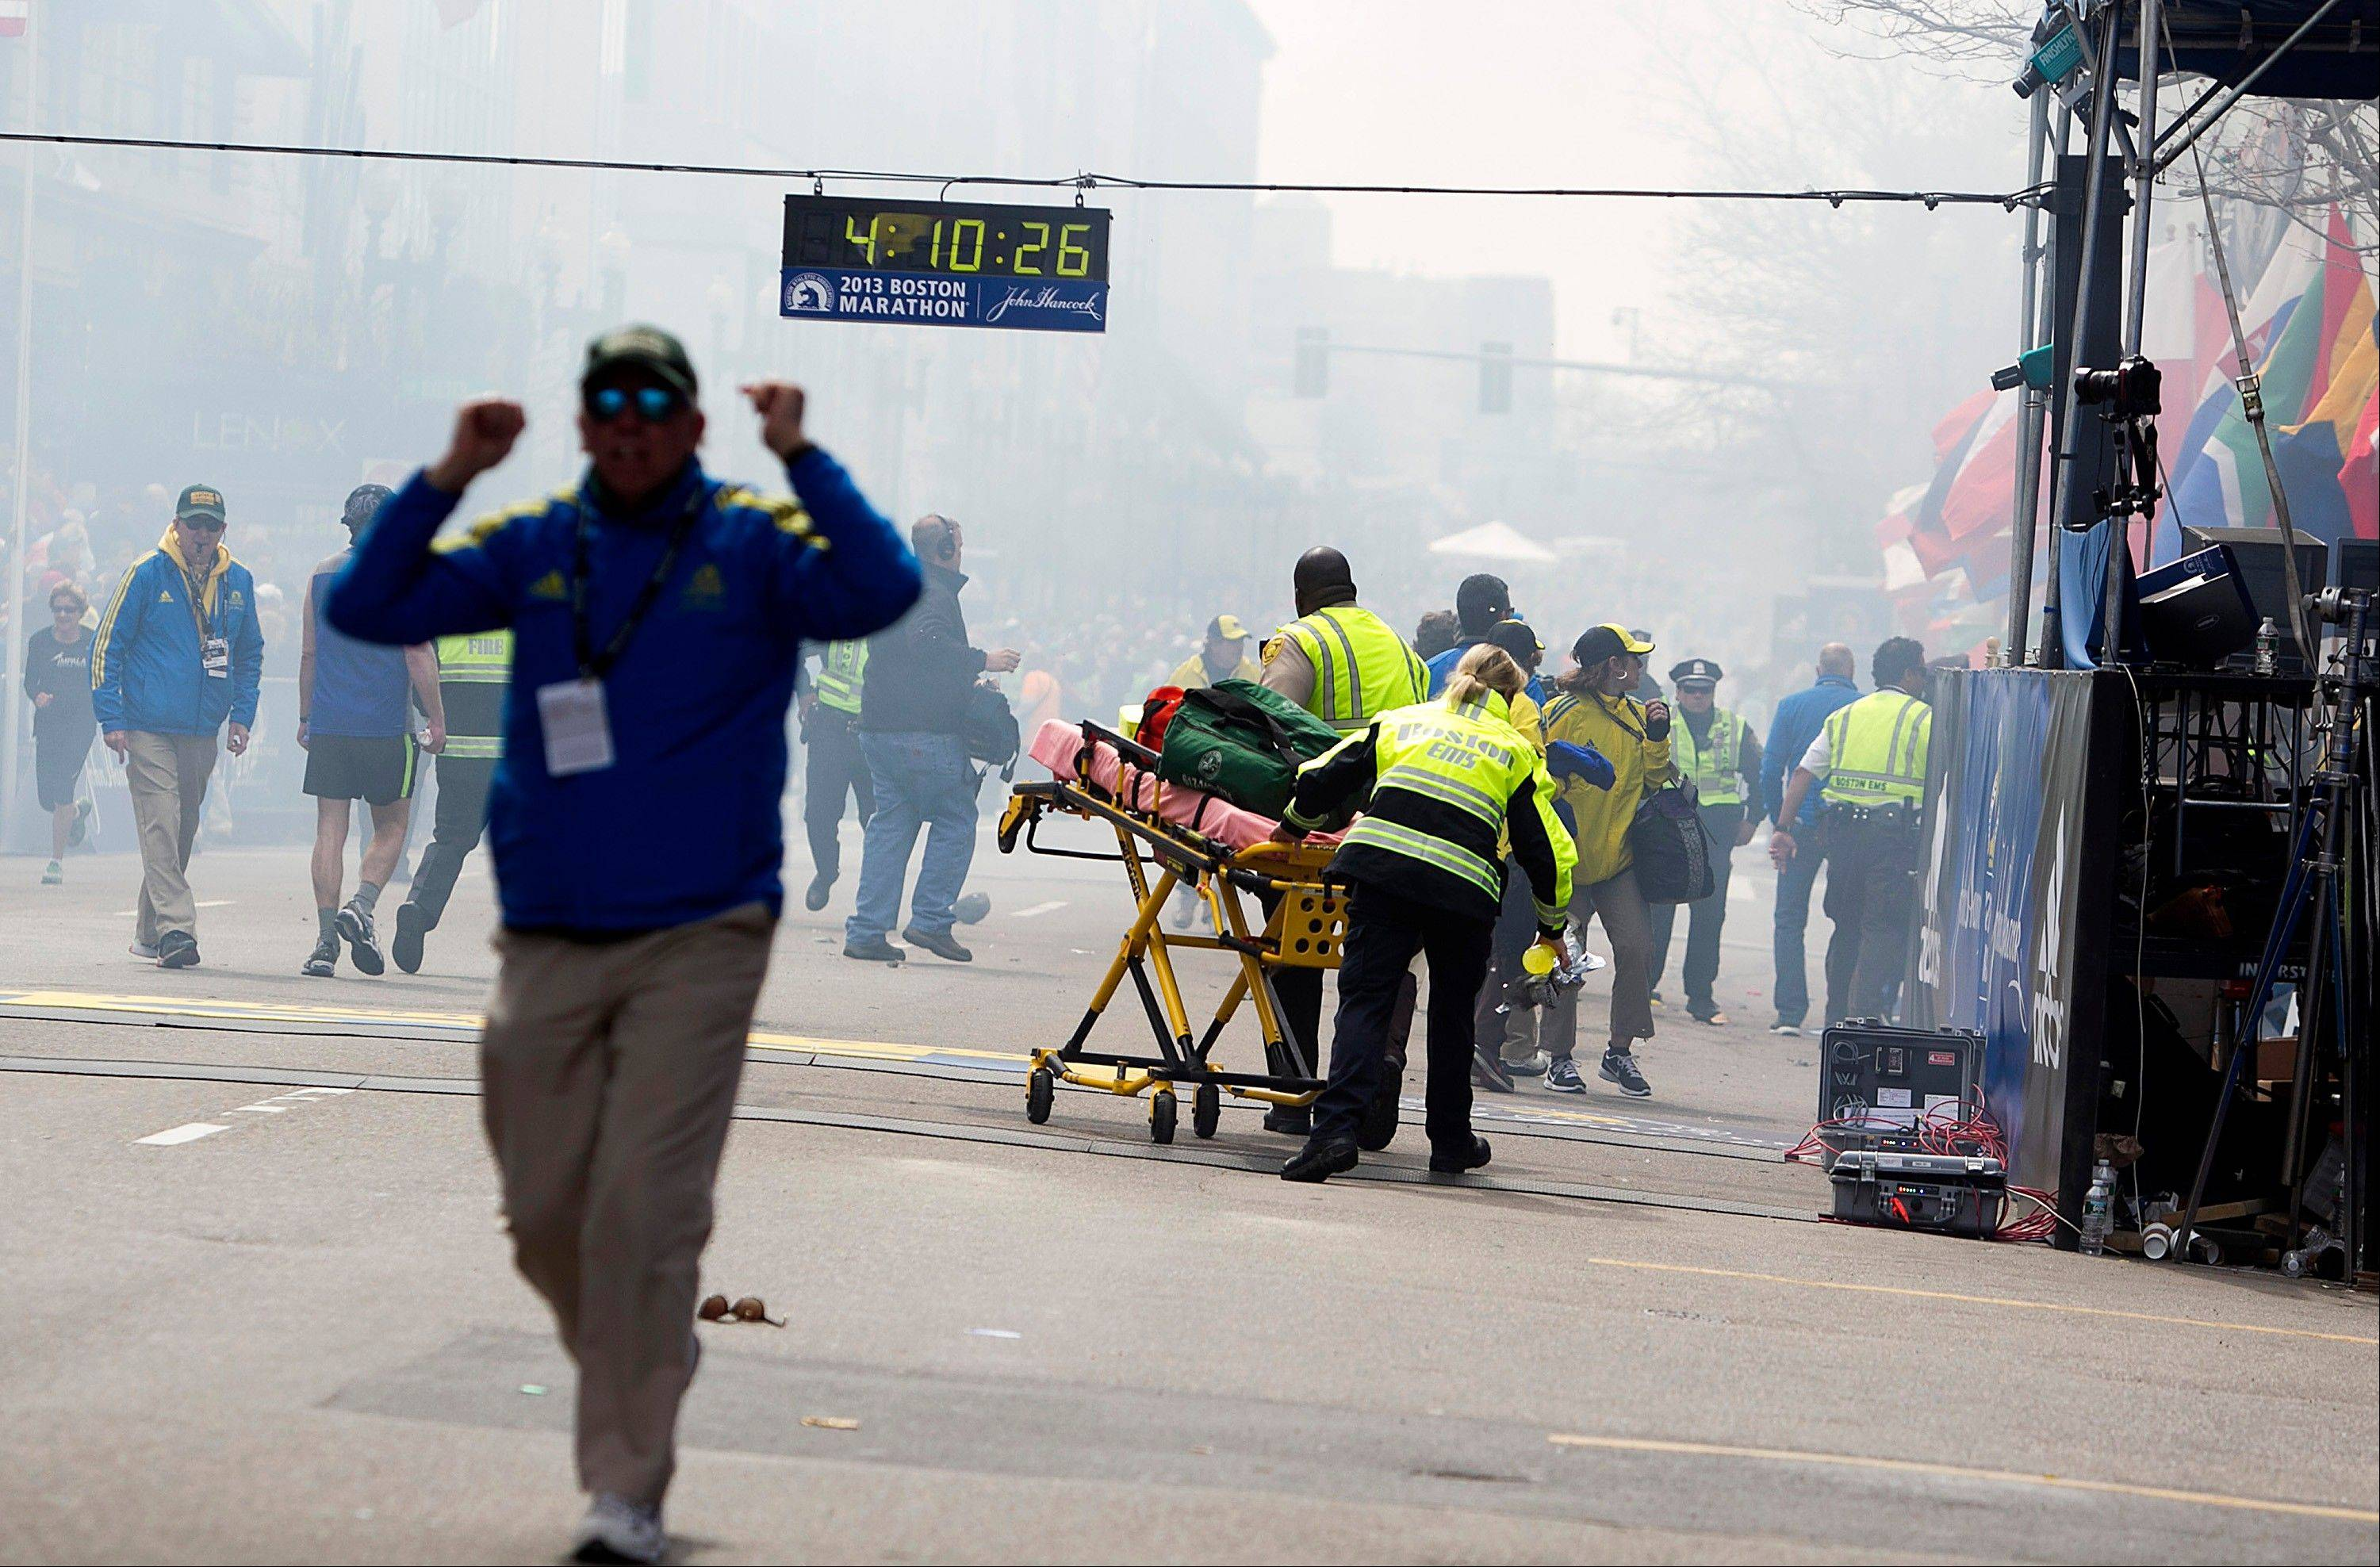 First responders rush to where two explosions rocked the finish line area Monday at the Boston Marathon near Copley Square.